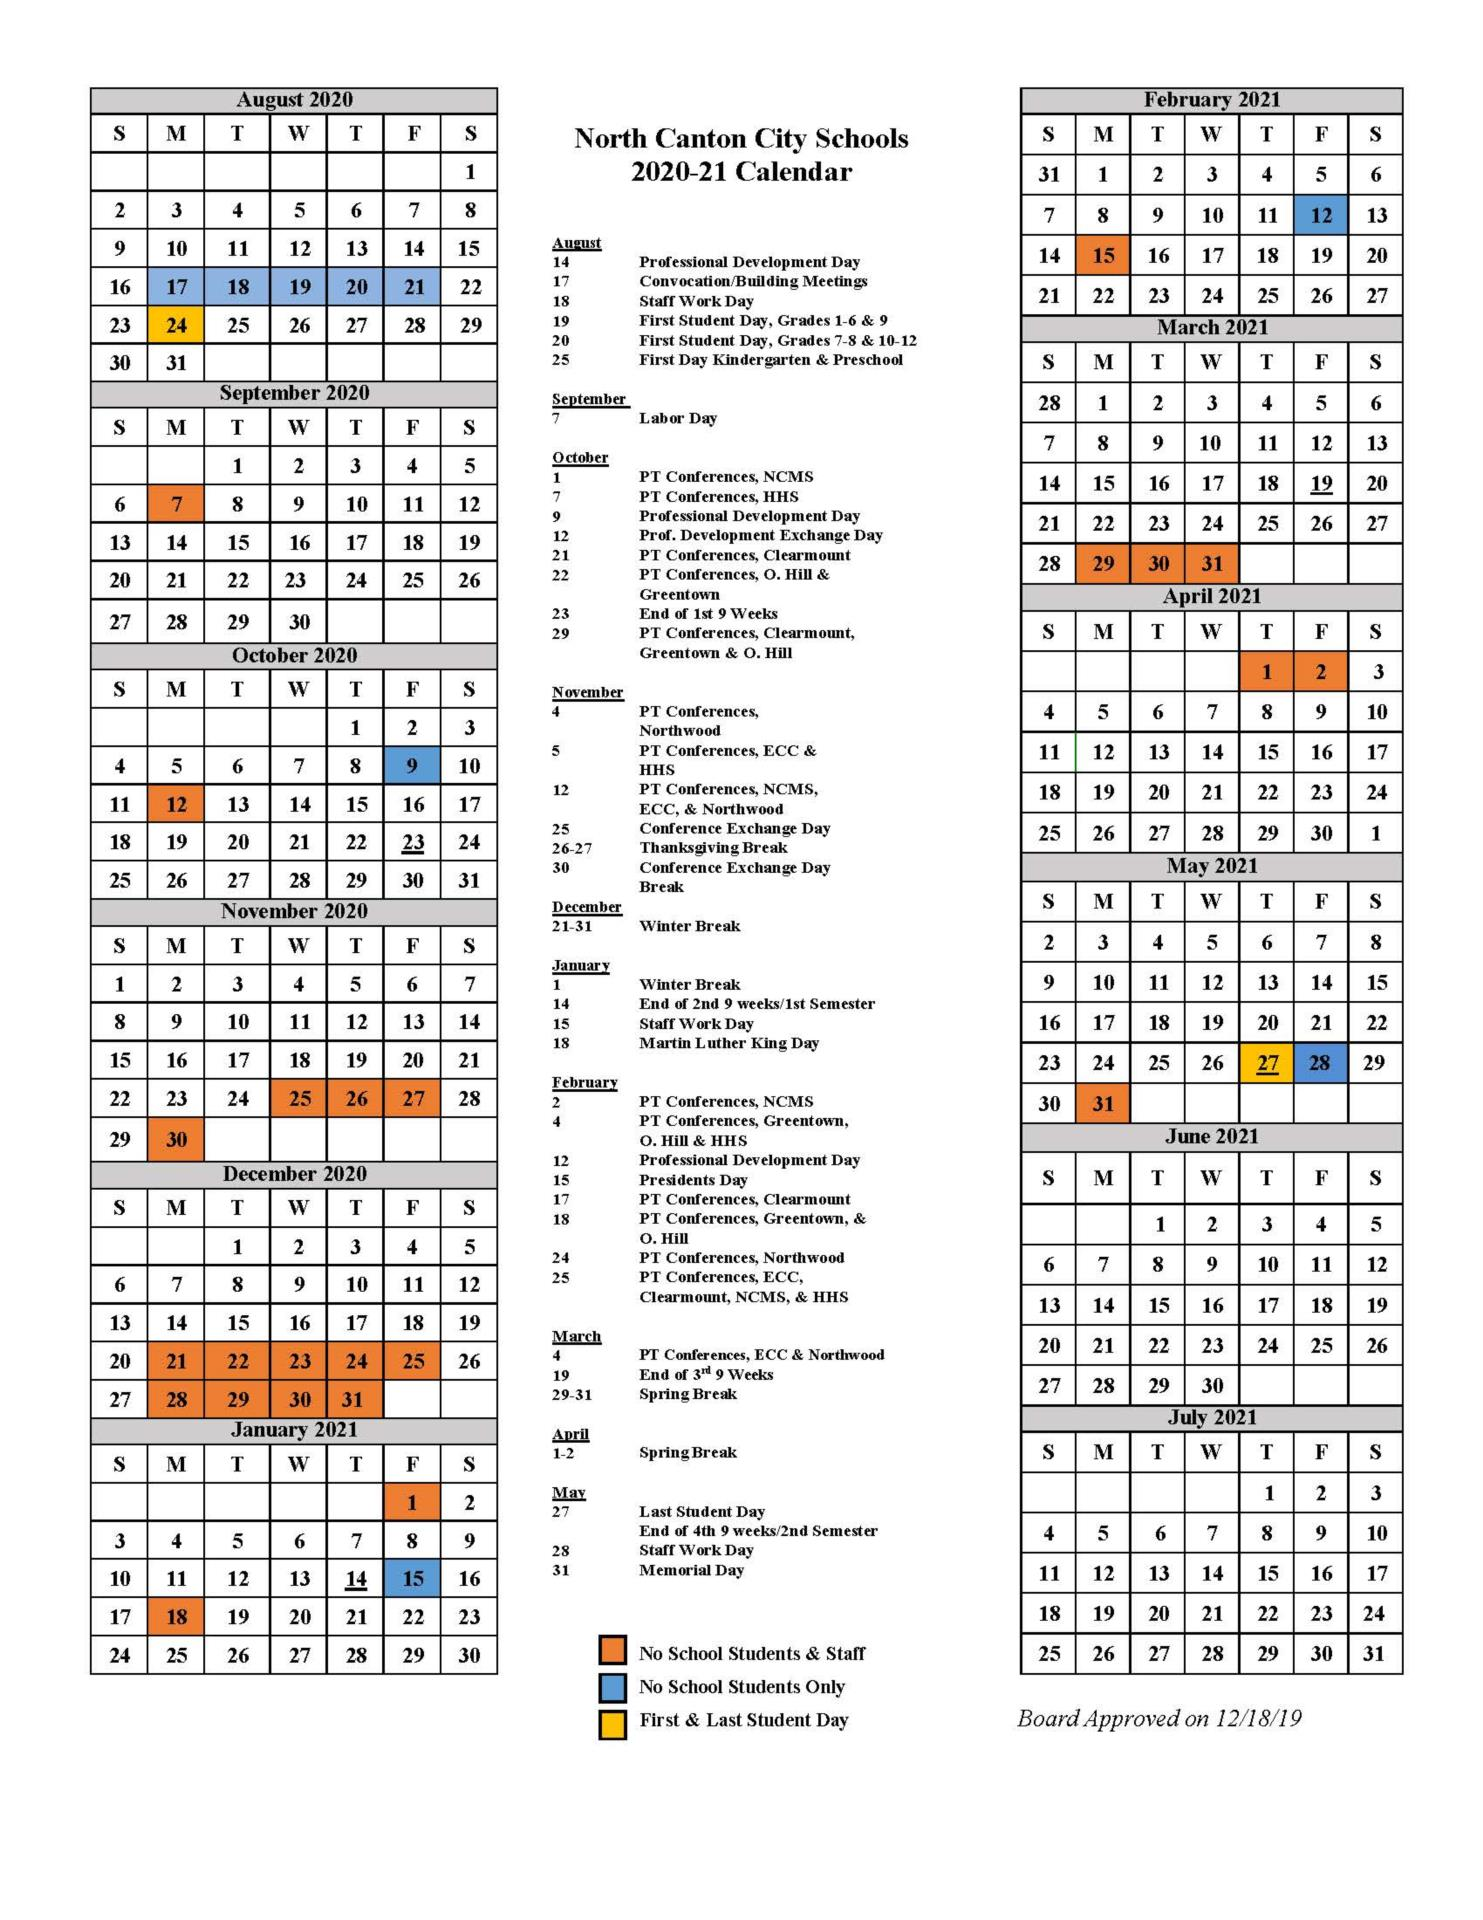 calendar with special events highlighted